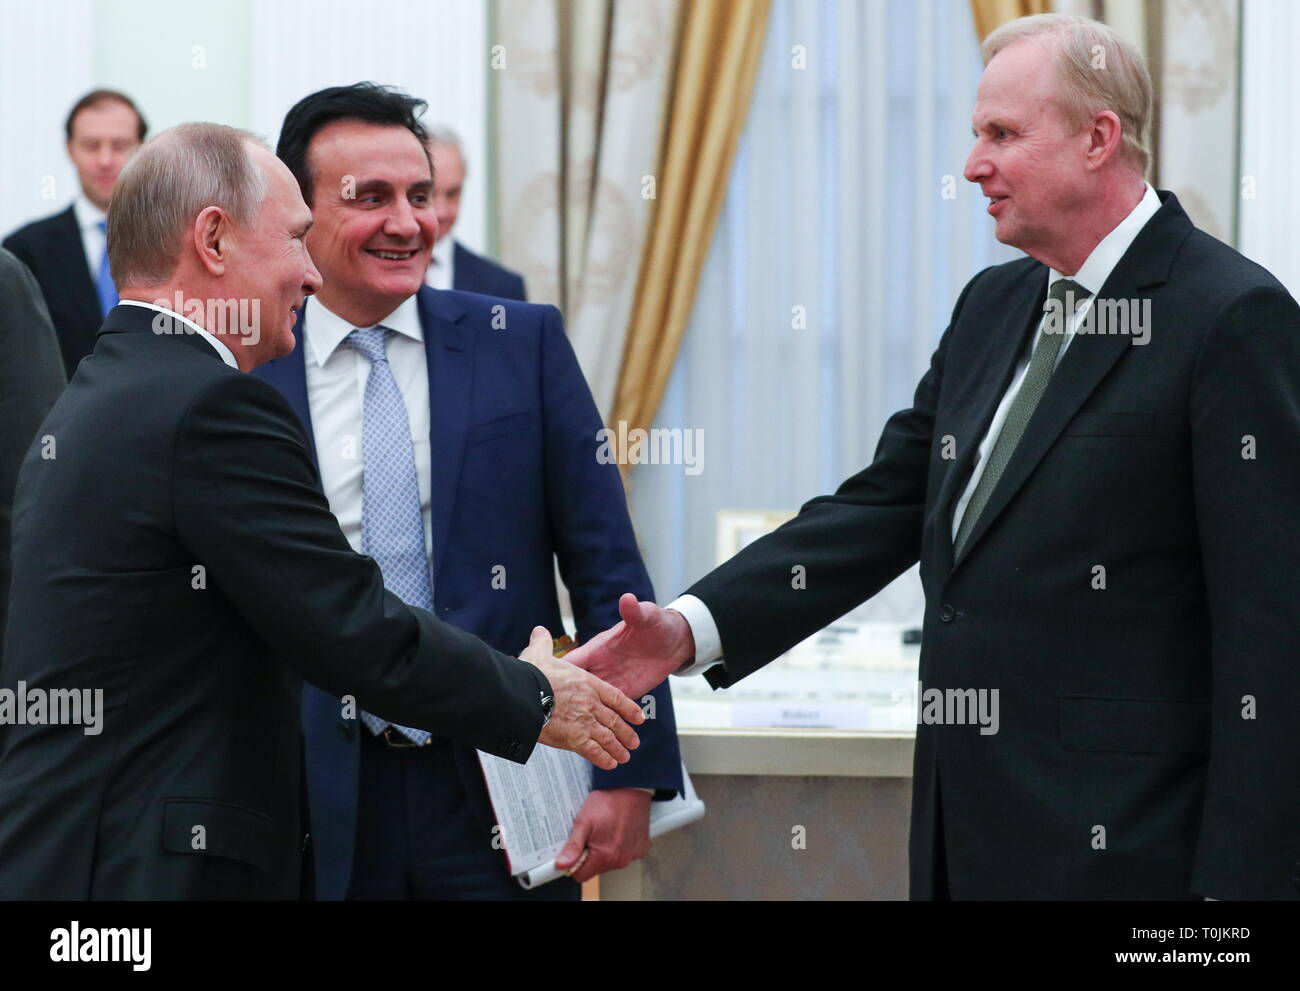 Moscow, Russia. 20th Mar, 2019. MOSCOW, RUSSIA - MARCH 20, 2019: Russia's President Vladimir Putin during a meeting with AstraZeneca CEO Pascal Soriot, BP Chief Executive Robert Dudley (L-R) and other British businessmen at the Moscow Kremlin. Mikhail Tereshchenko/TASS Credit: ITAR-TASS News Agency/Alamy Live News - Stock Image